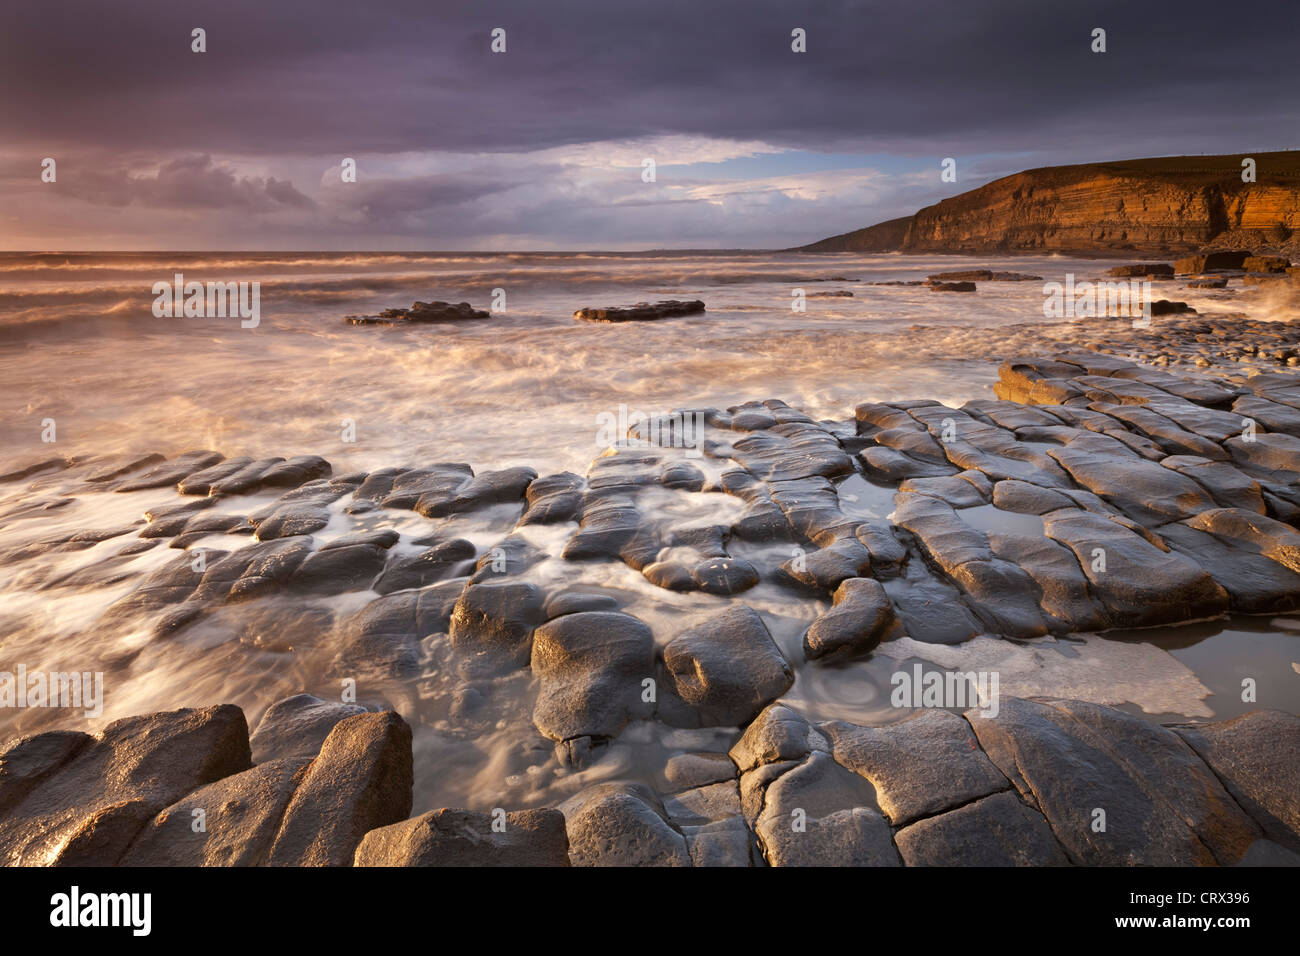 Dunraven Bay on the Glamorgan Heritage Coast, South Wales. Winter (December) 2011. - Stock Image